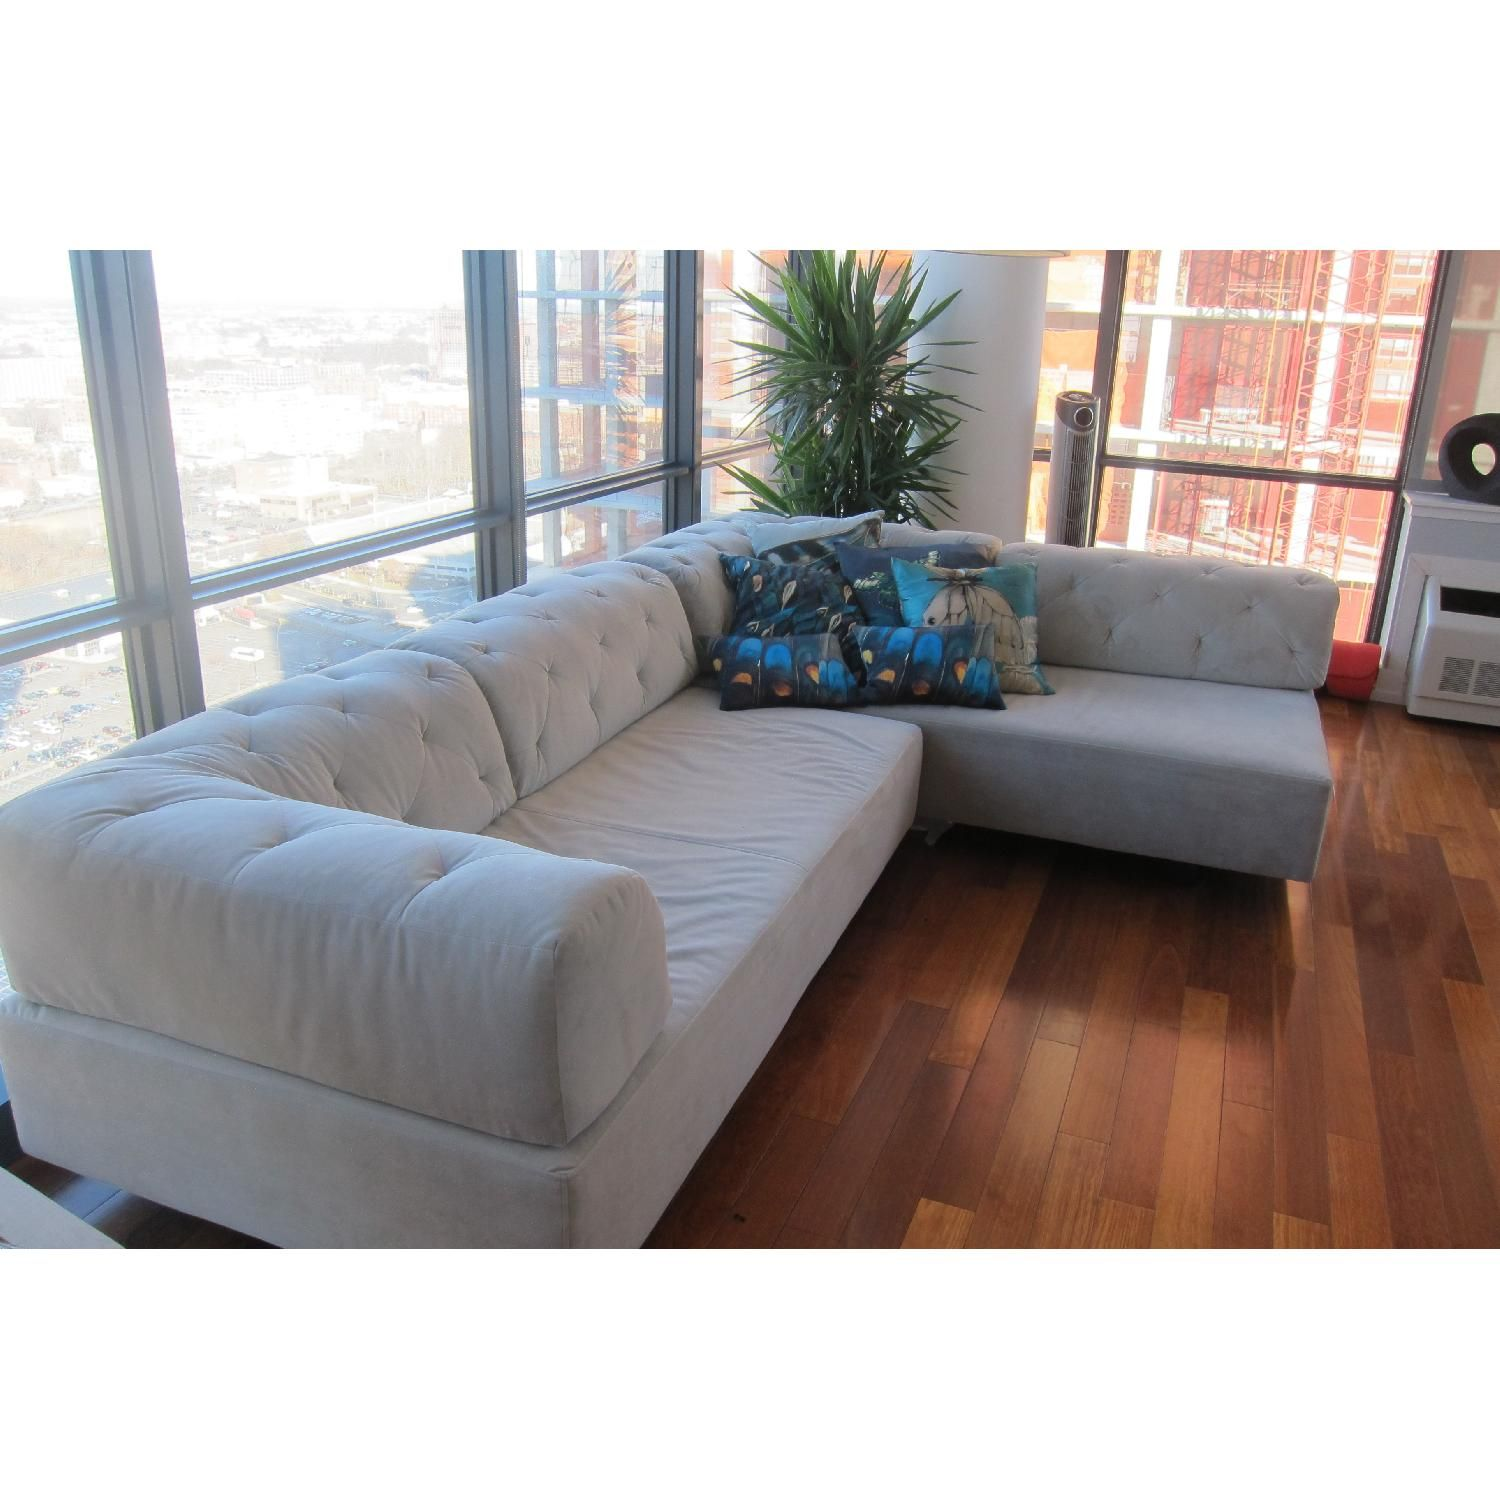 West Elm Tufted Tillary Sectional Sofa 5 Sofas